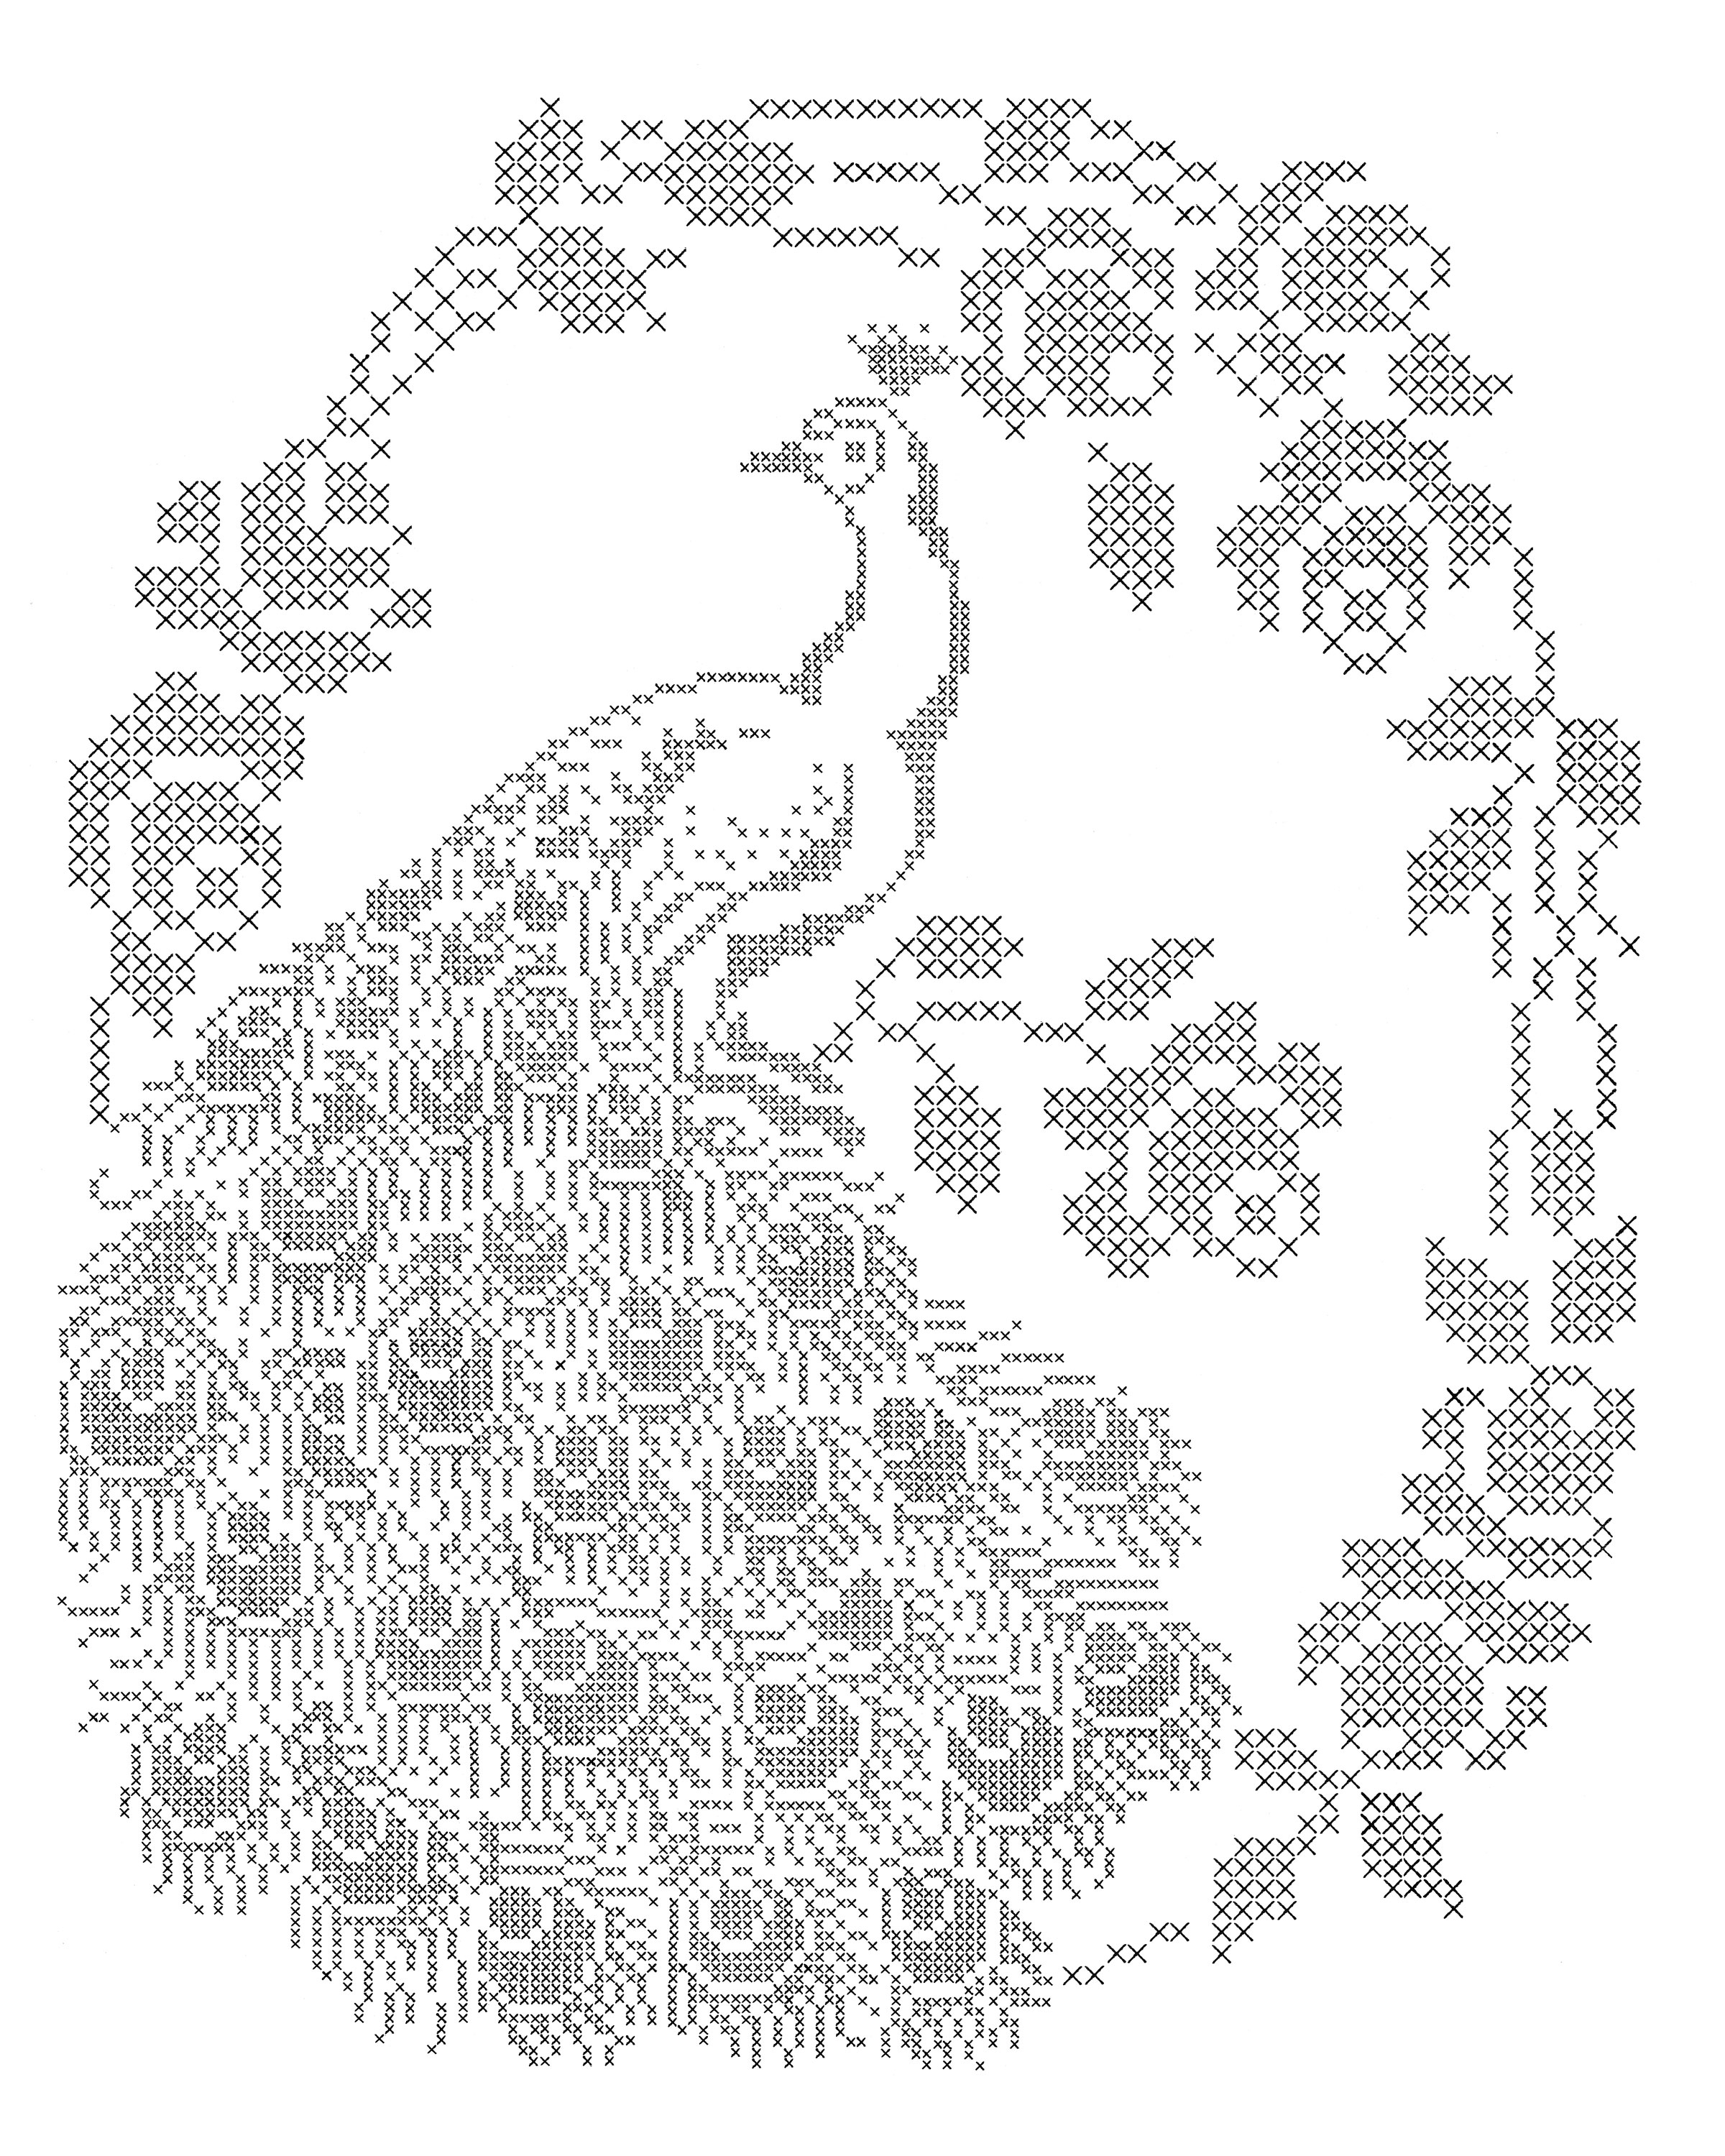 Peacock Embroidery Patterns Laura Wheeler Design 688 Cross Stitch Peacock Q Is For Quilter